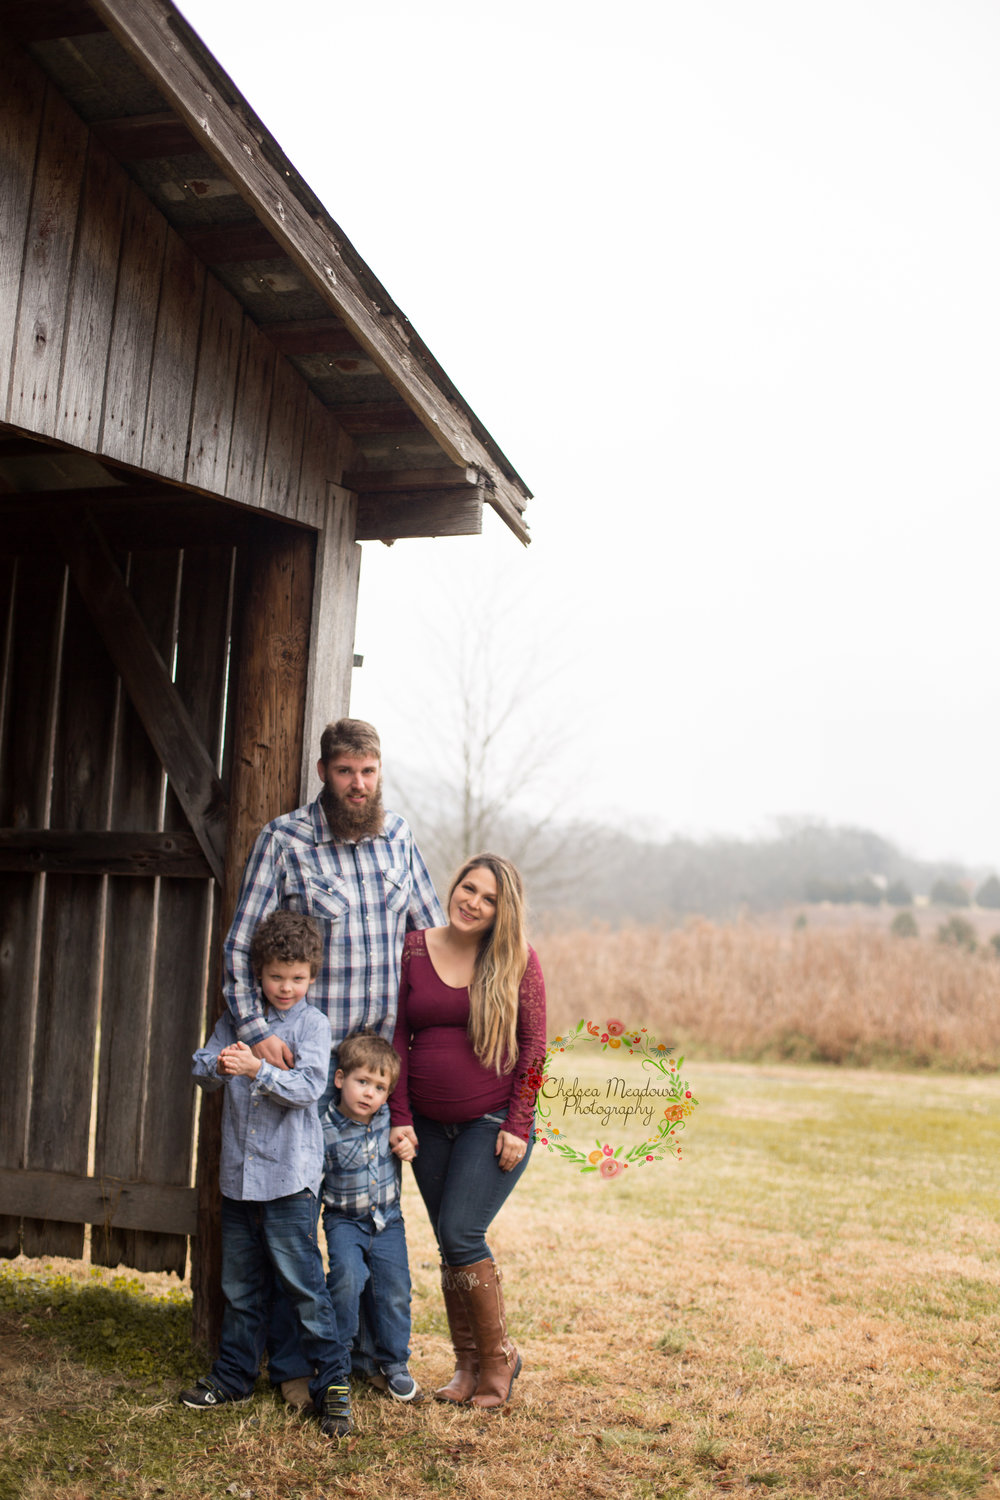 Jessica and Family Maternity Session - Nashville Maternity Photographer - Chelsea Meadows Photography (105).jpg